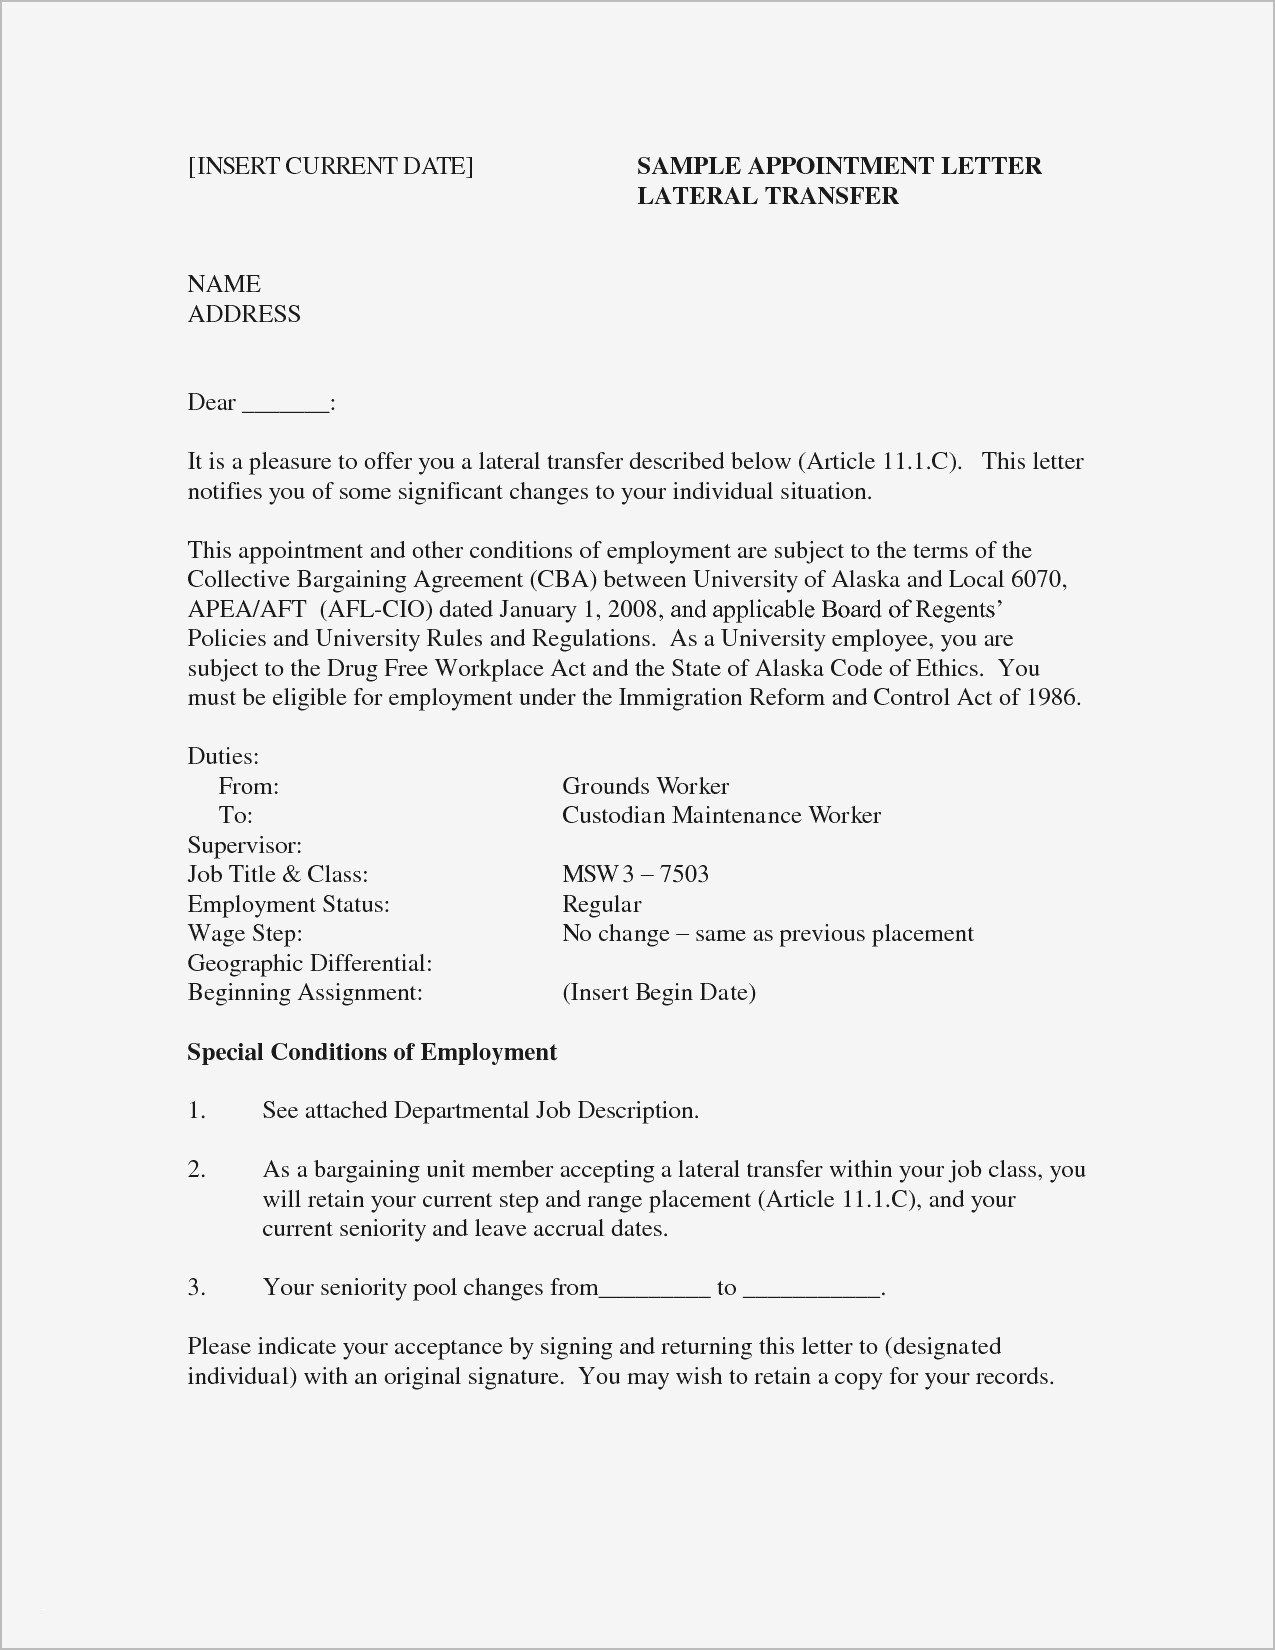 My Perfect Resume Reviews Lovely Lovely The Resume Review In 2020